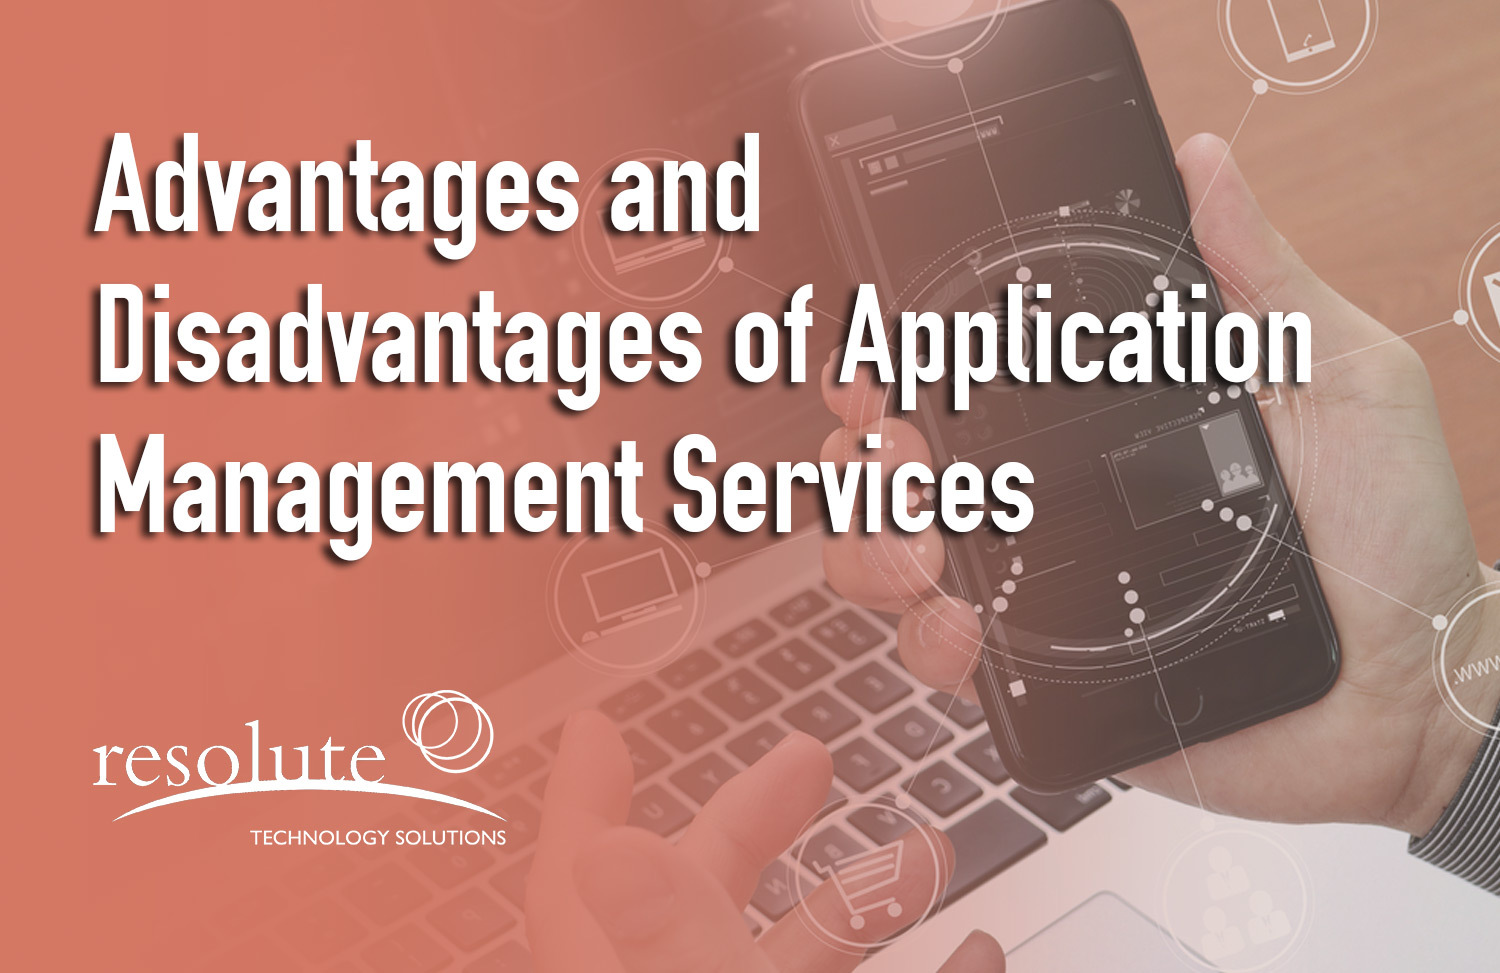 Advantages and Disadvantages of Application Management Services